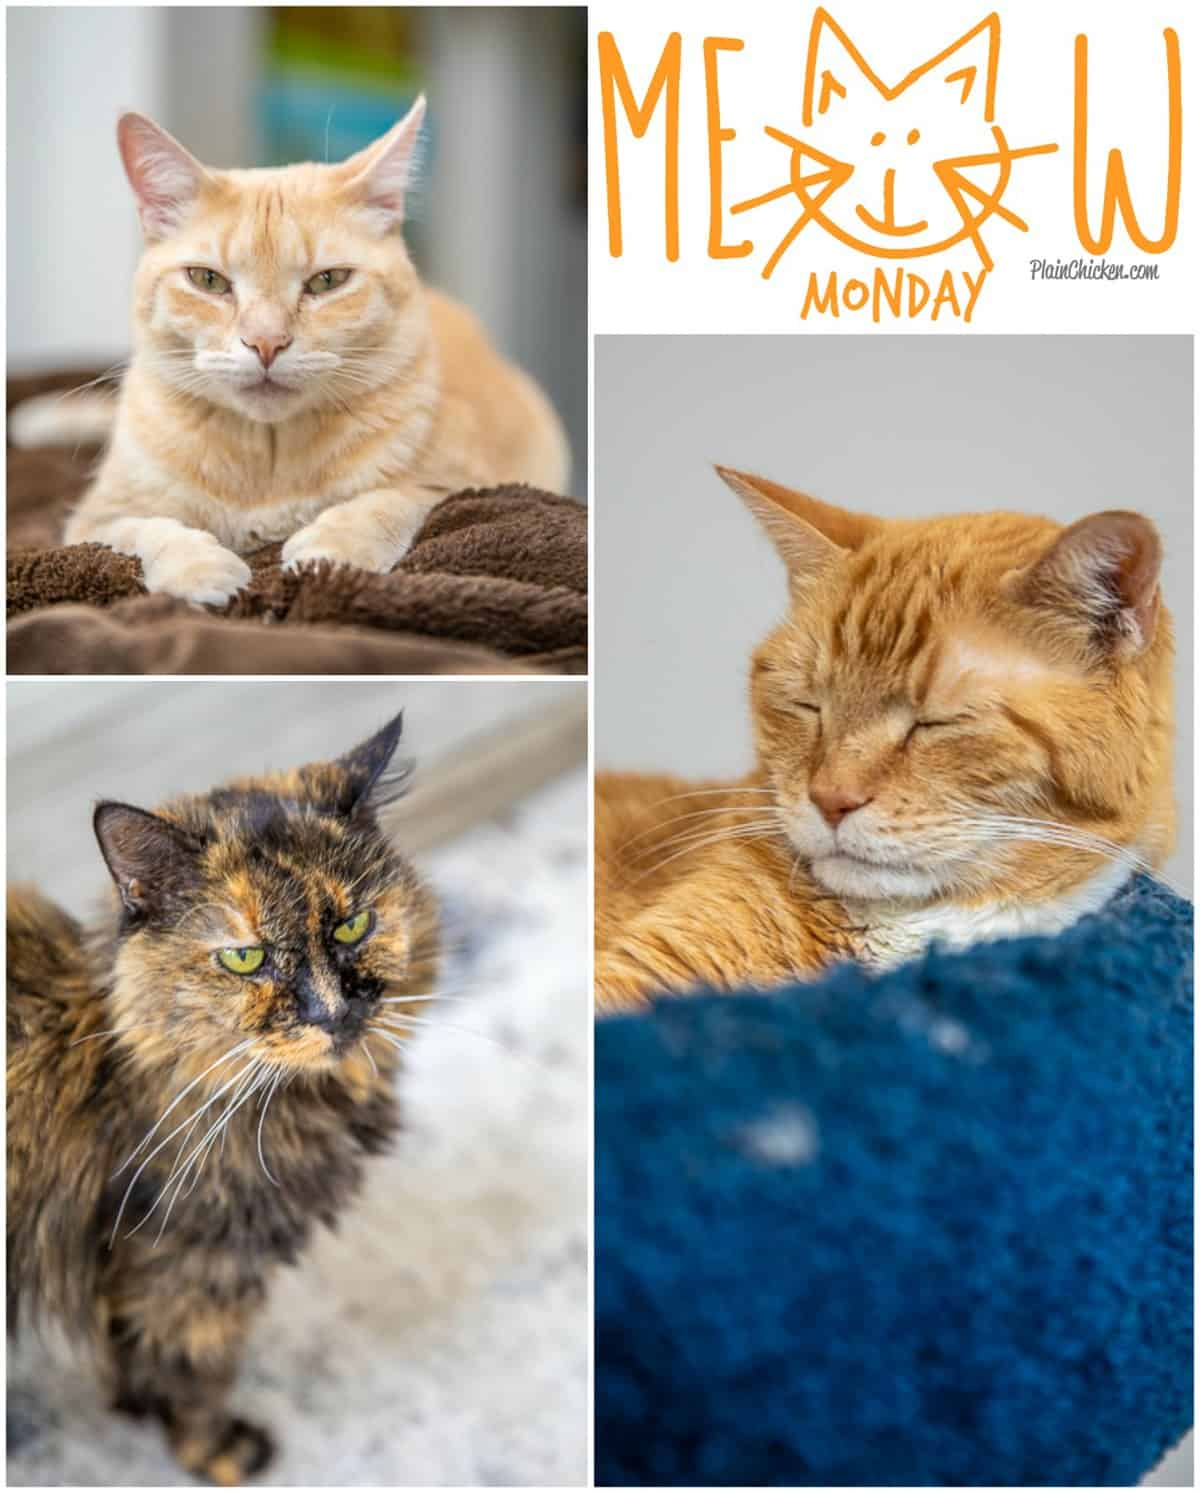 Meow Monday - pictures of cute cats to start your week! Come see what Jack, Squeaky and Nacho Man Kitty Savage have been up to this week! #cats